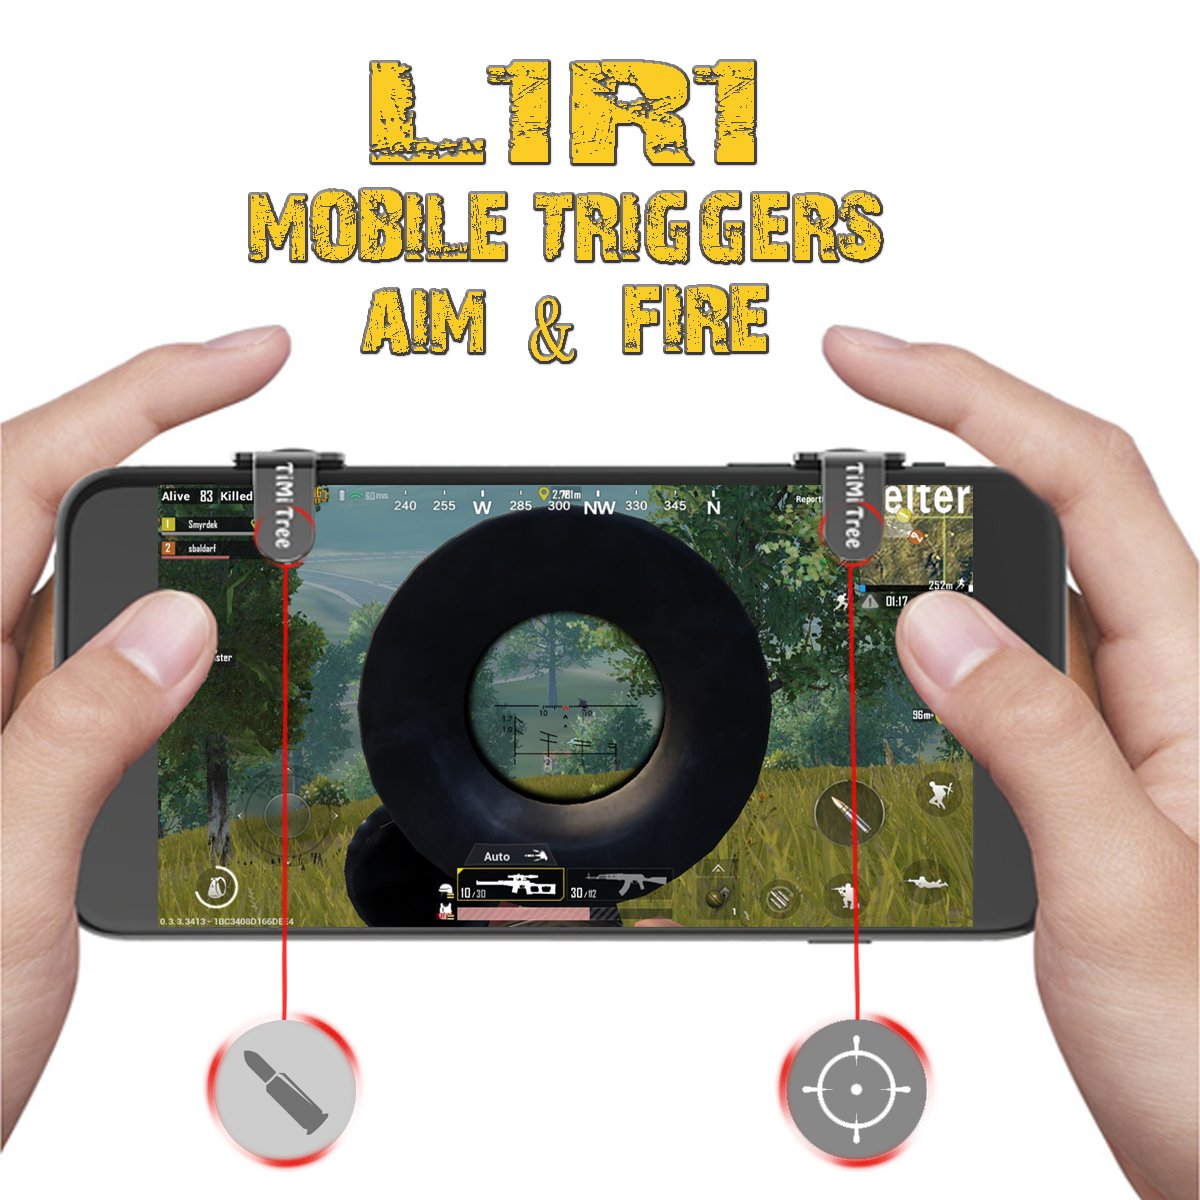 PUBG Mobile Game Controller/Triggers/Joystick, FORTNITE L1 R1 Mobile Claw Metal, Precise Aim and Shoot Button Keys for FPS Survival Game,Cell Phone Game Controller for Android IOS - TiMi Tree